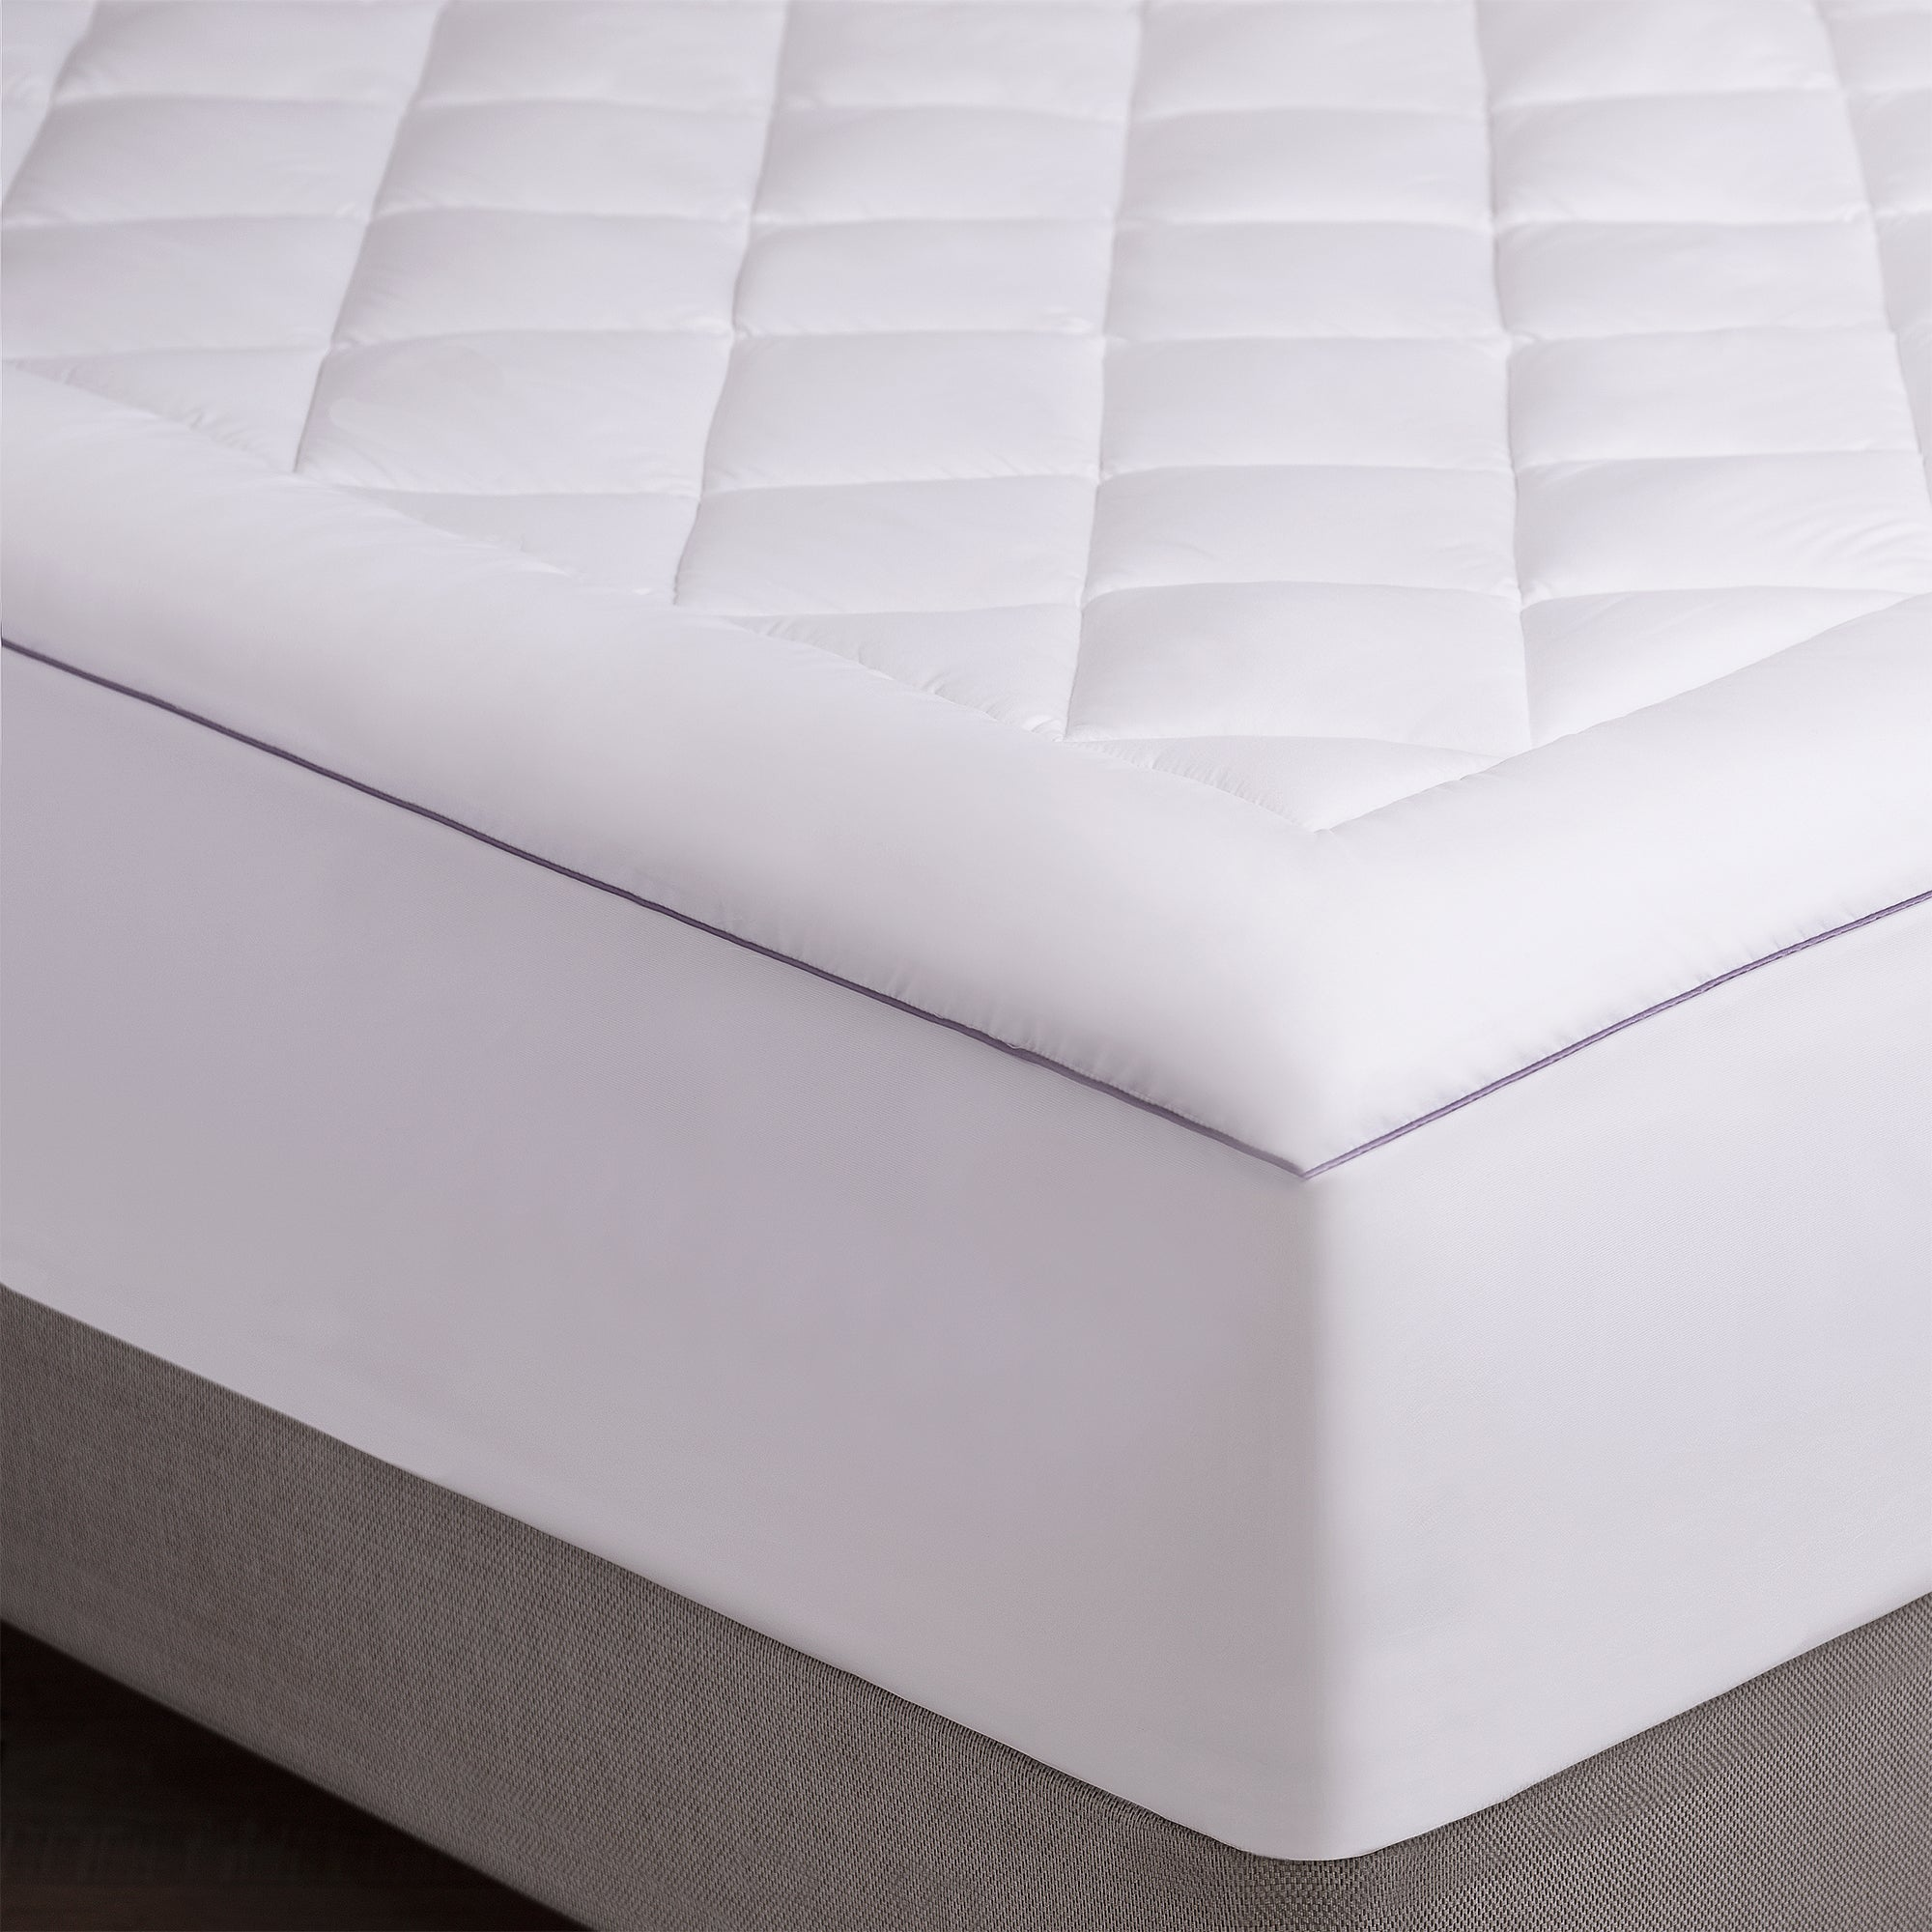 Lavender SleepInfusion Mattress Pad